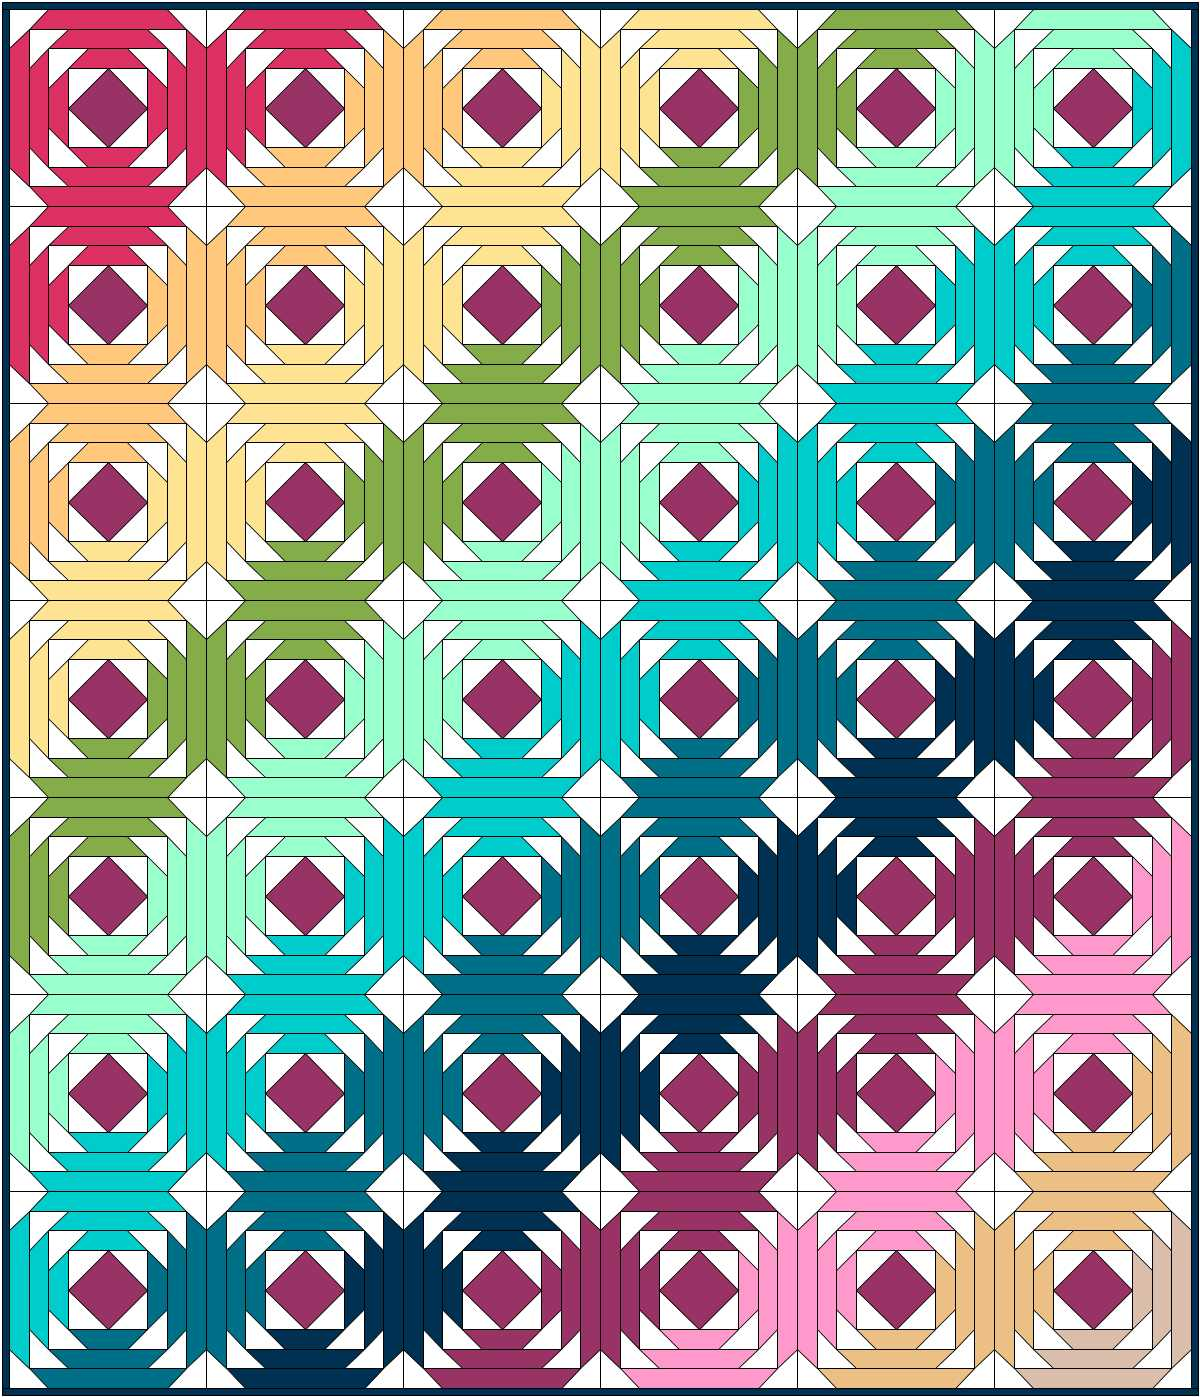 Hyacinth Quilt Designs: Pineapple Quilt Block Tutorial : pineapple quilt block pattern - Adamdwight.com